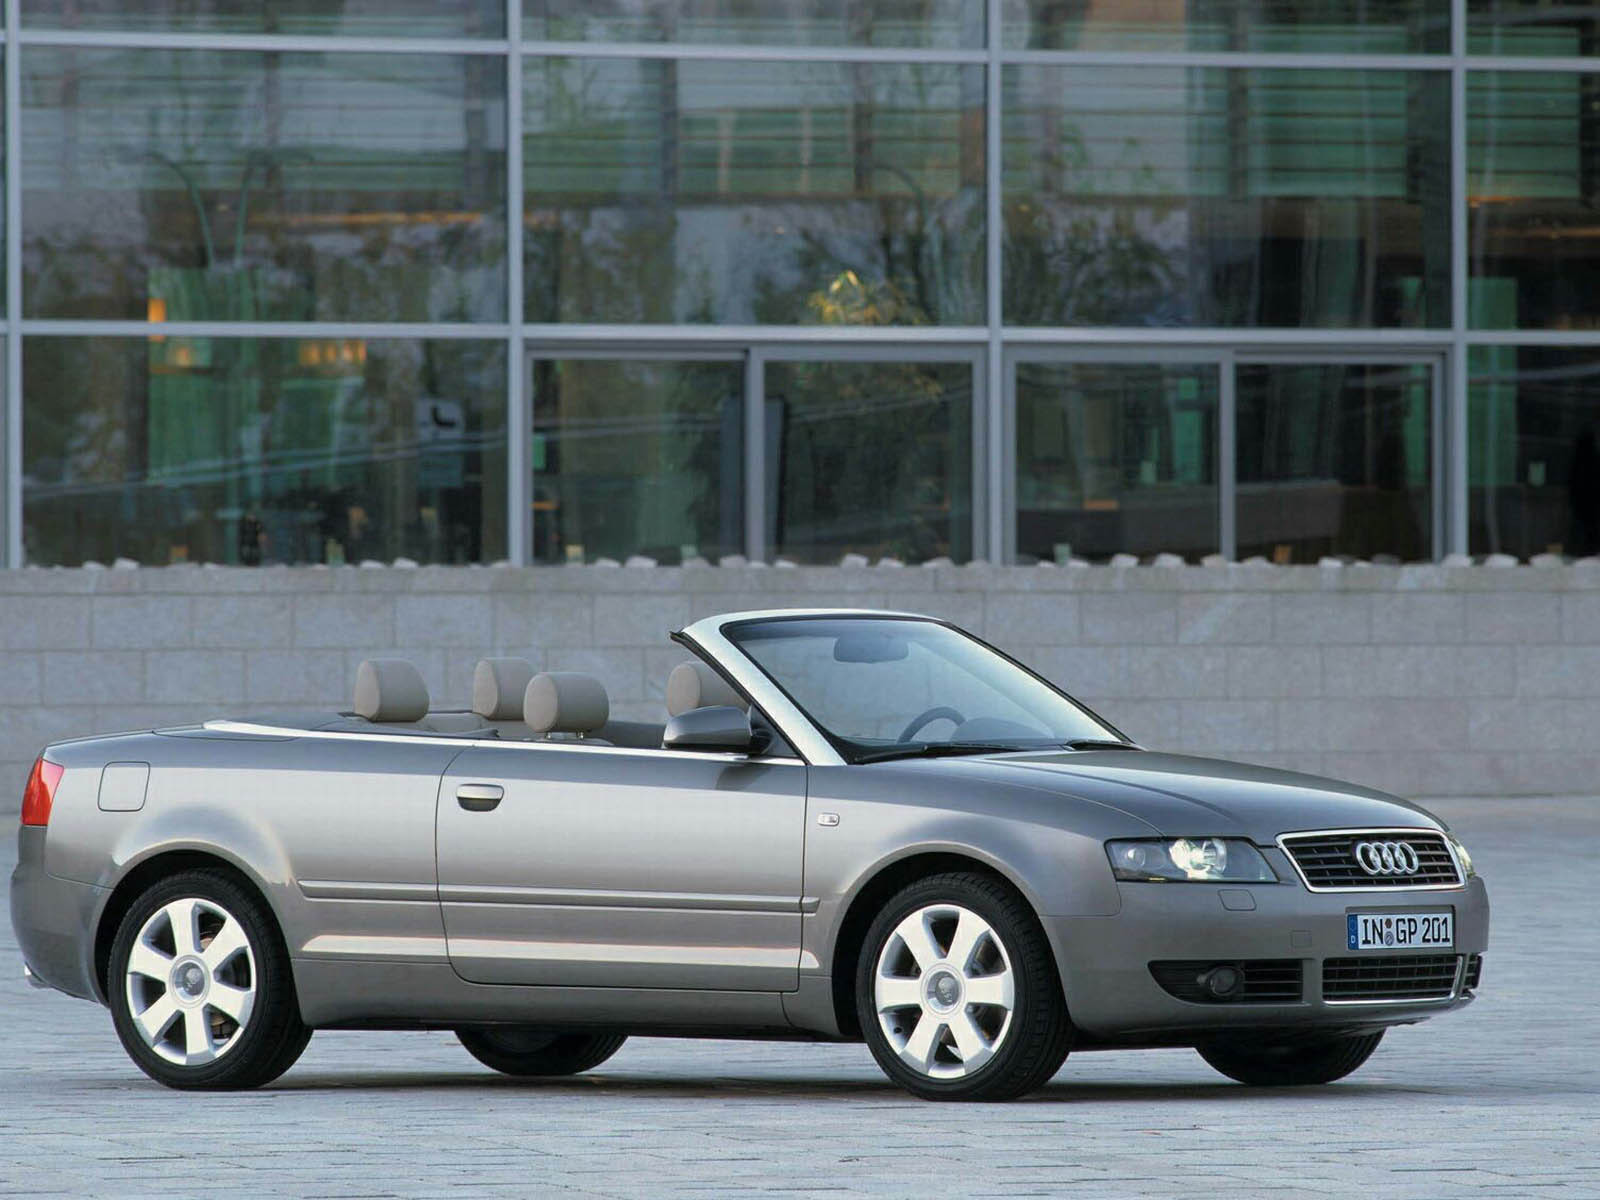 2001 Audi A4 Cabriolet | Top Speed